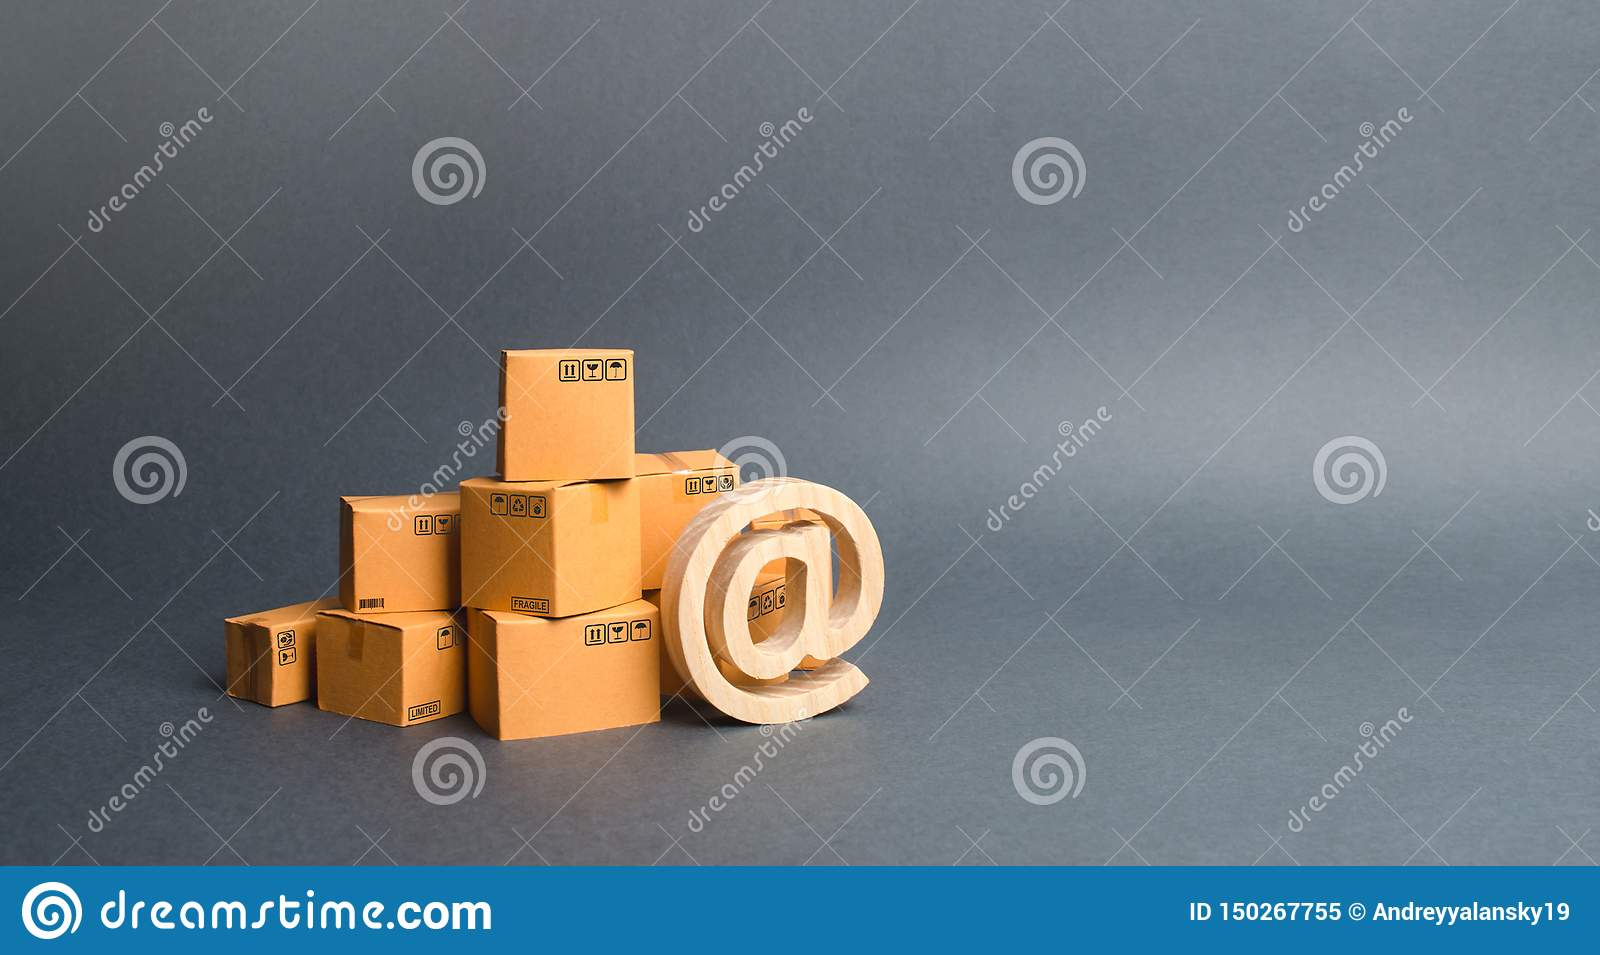 Pile of cardboard boxes and symbol commercial AT. shopping online. E-commerce. sales of goods and services through online trading